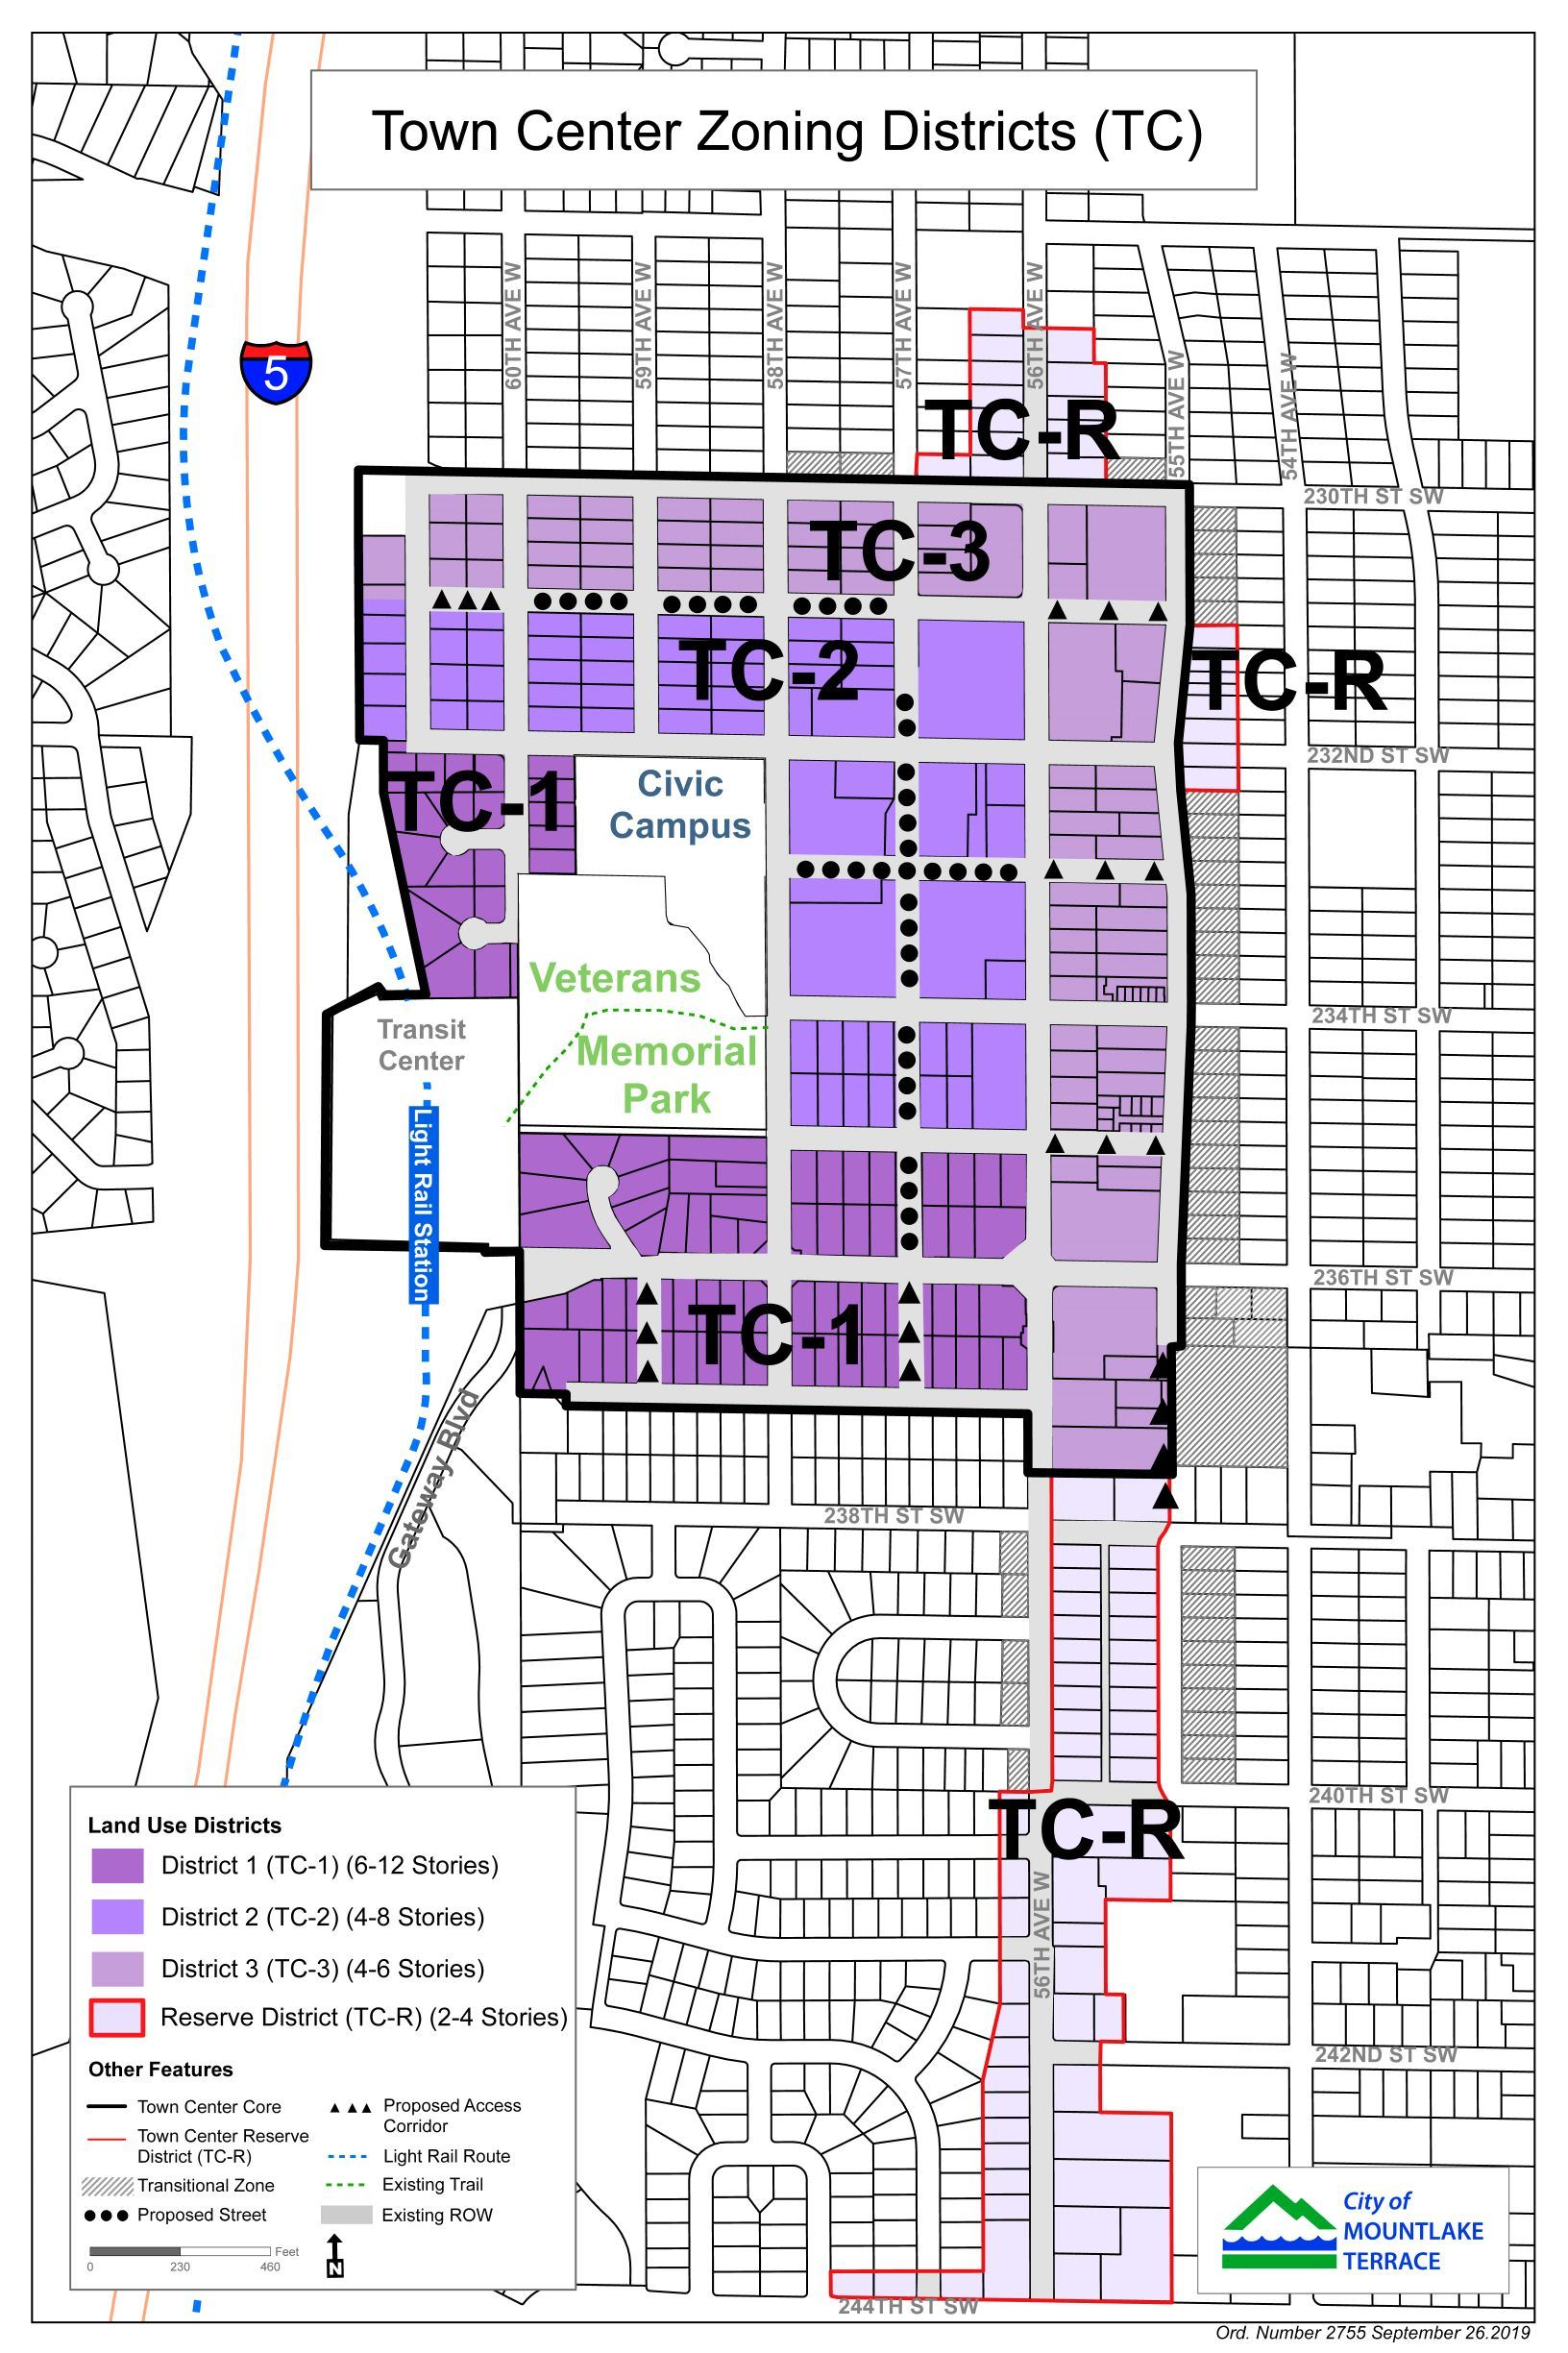 2019 Town Center Zoning Districts Map